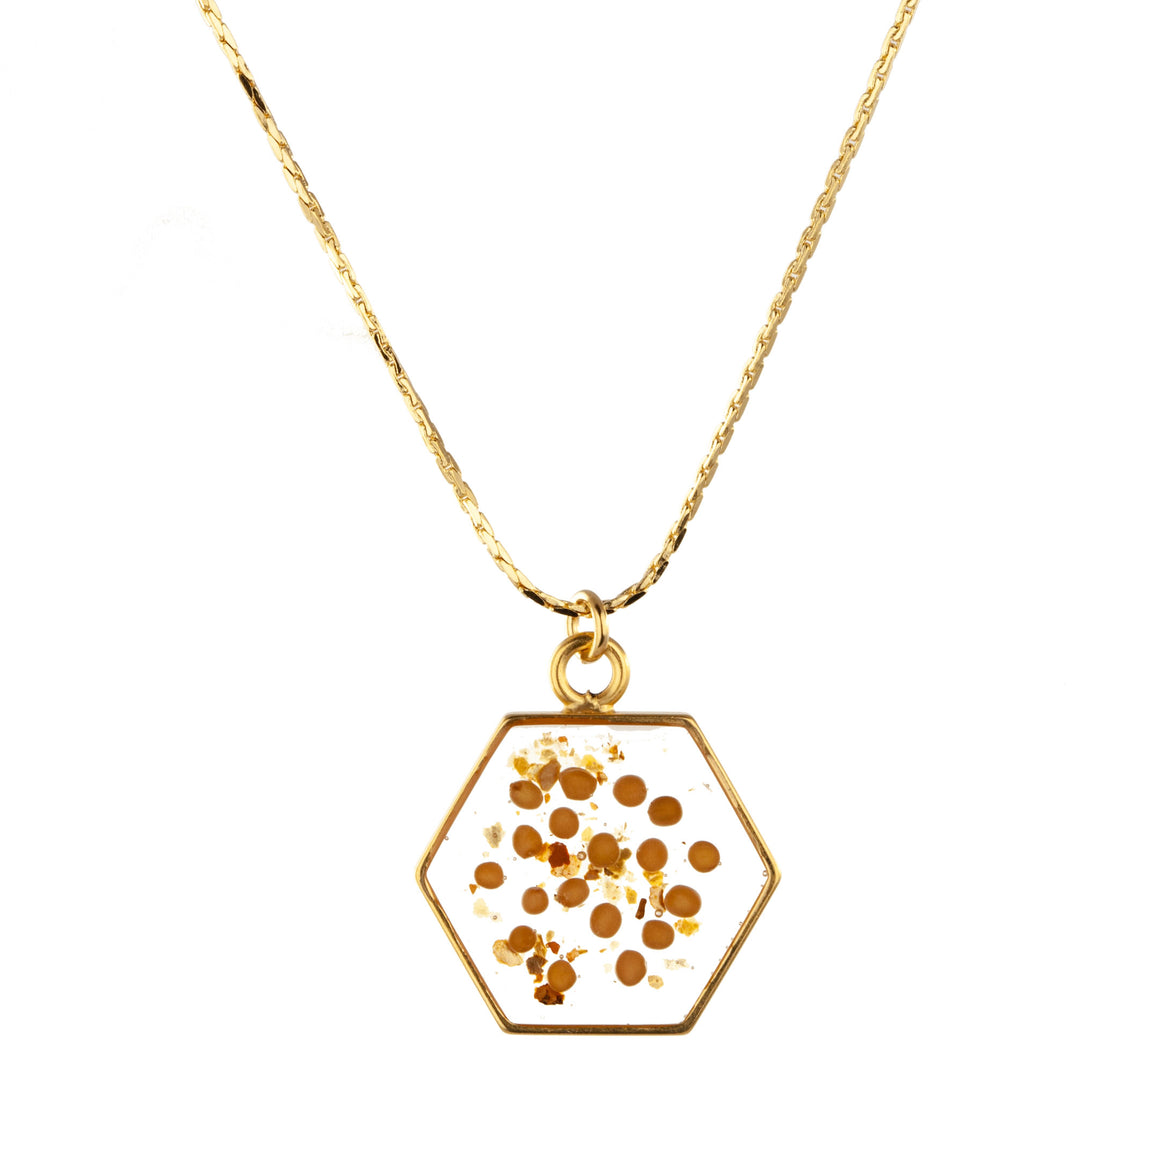 Yellow Mustard Seed | Large Hexagonal Necklace